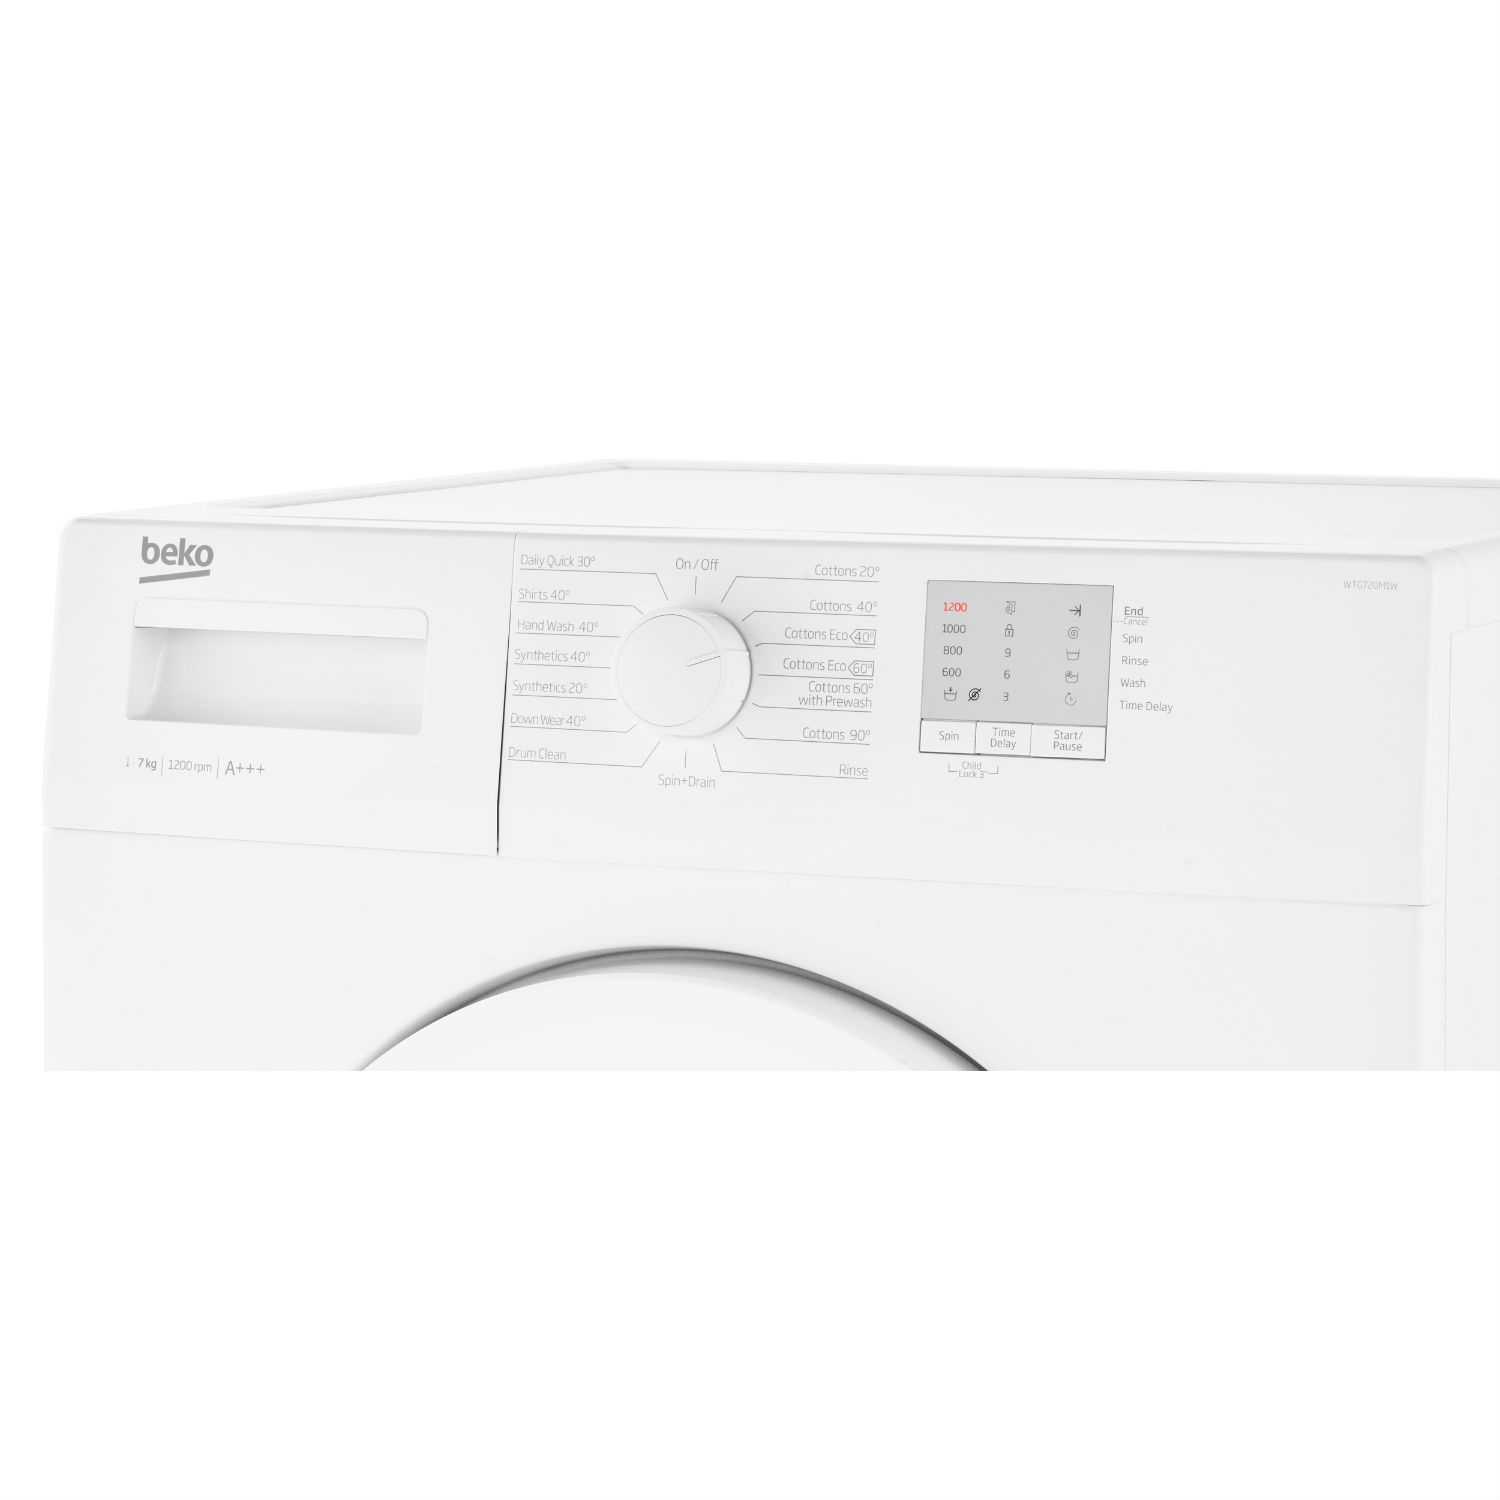 Beko 7kg 1200 Washing Machine - White - A+++ Energy Rated - 1